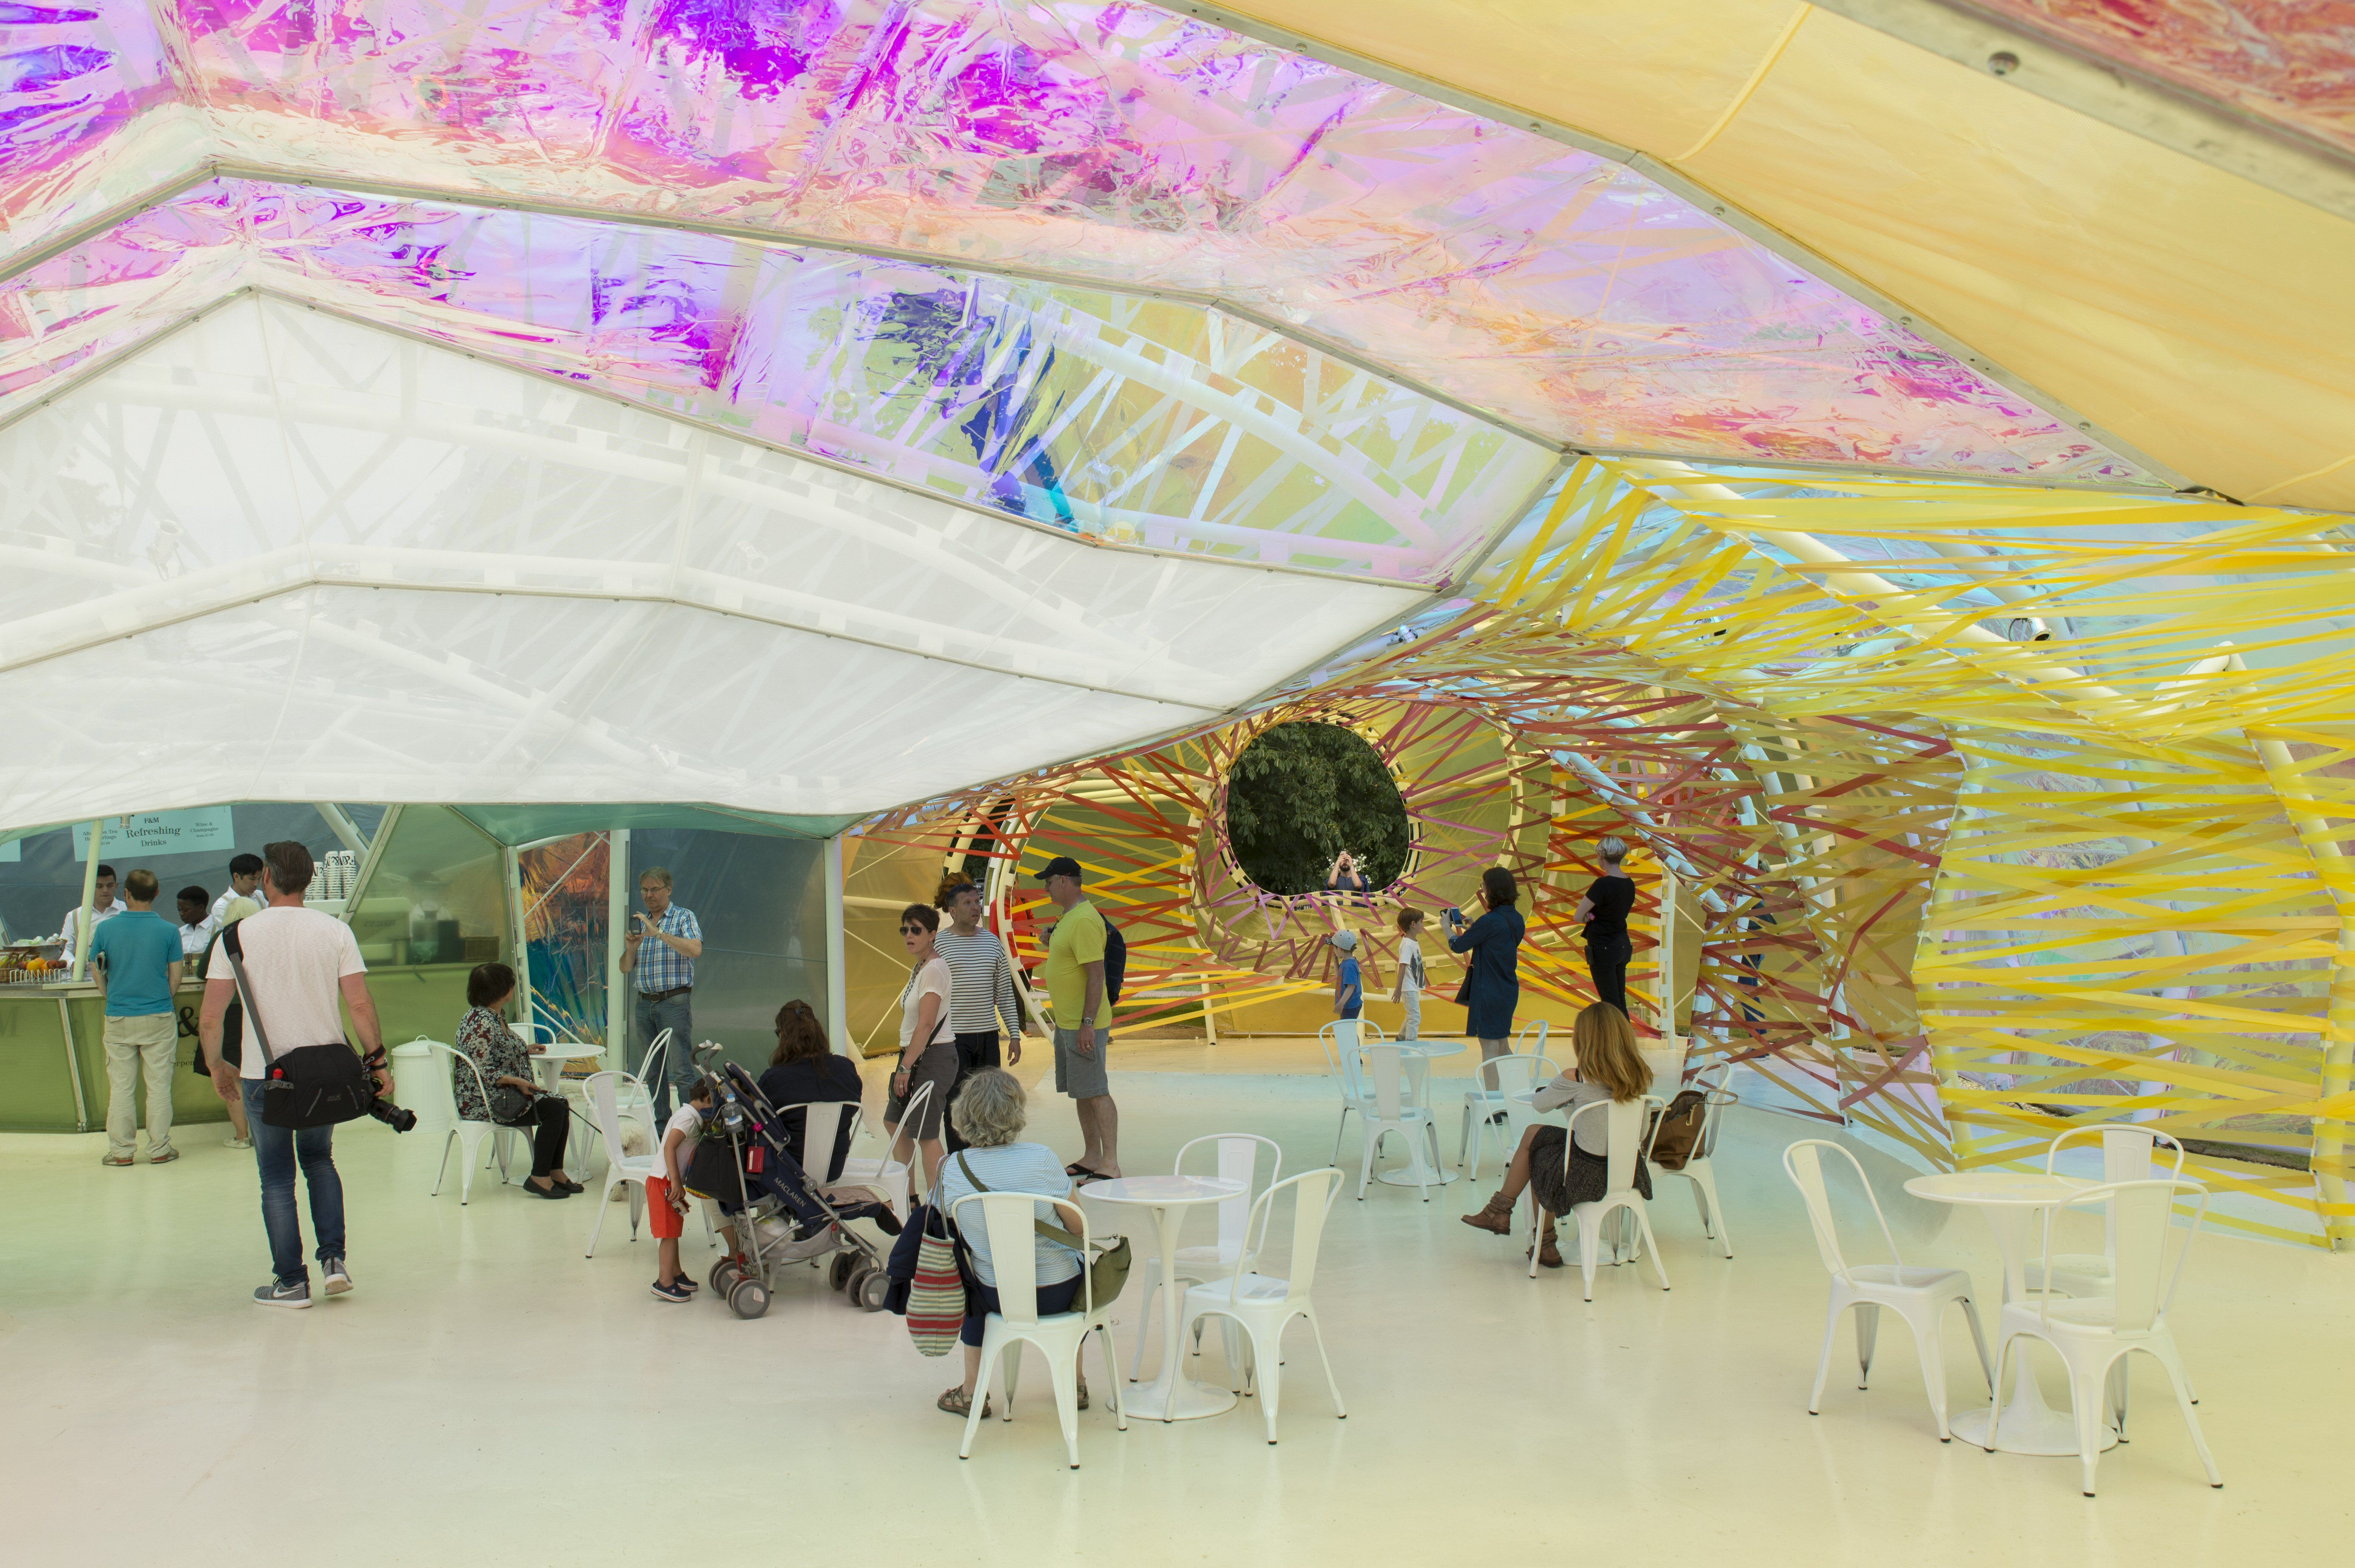 Colorful ETFE plastic forms the walls and ceiling of a small cafe